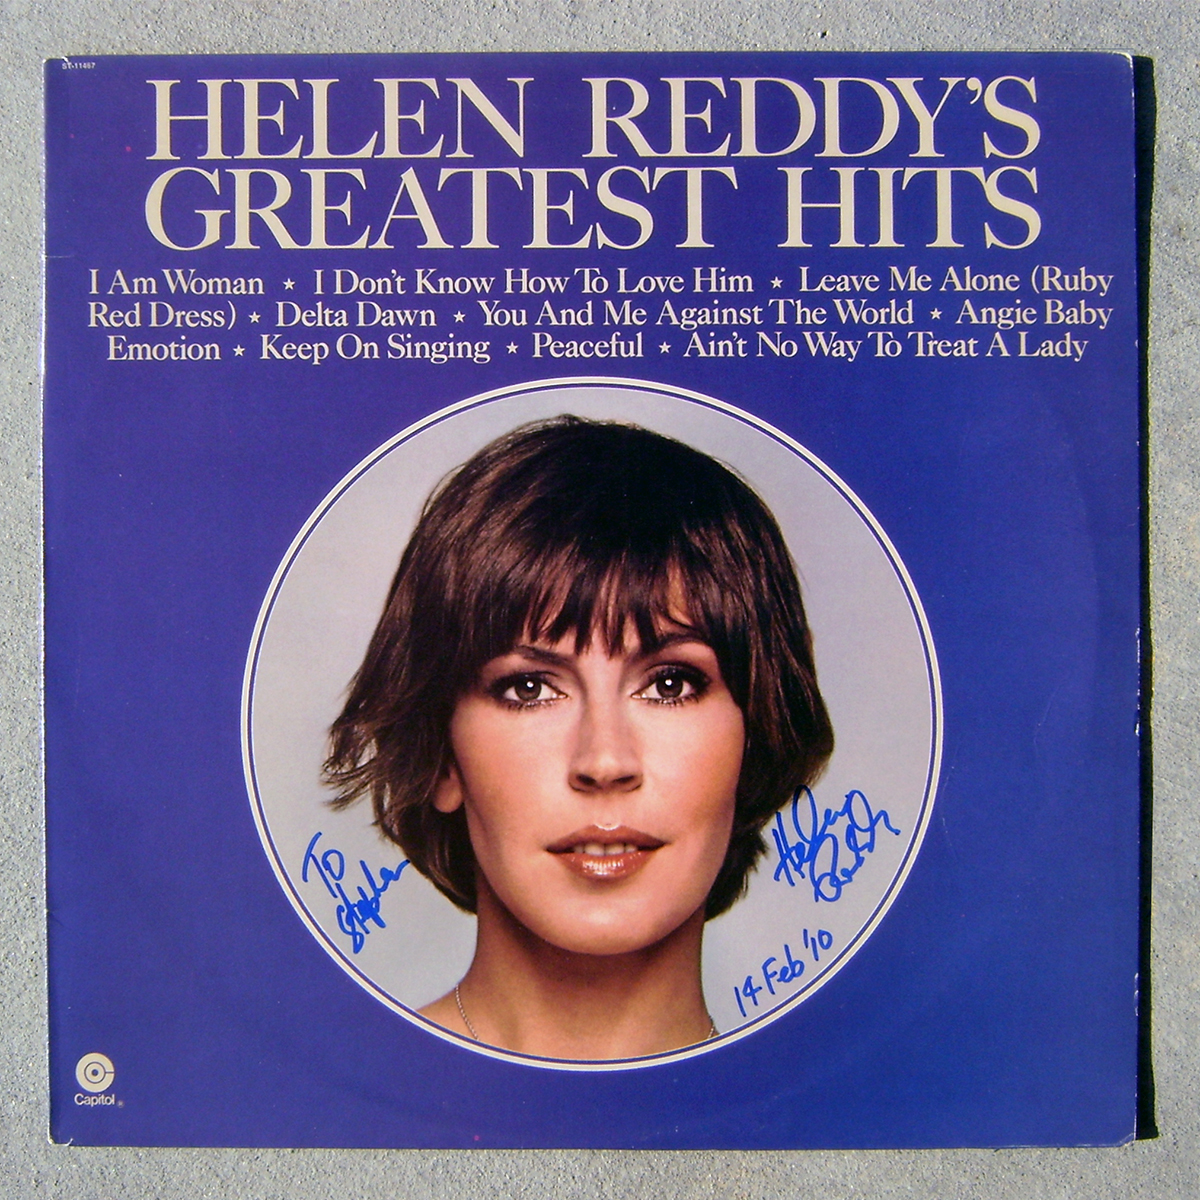 LP - Helen Reddy's Greatest Hits